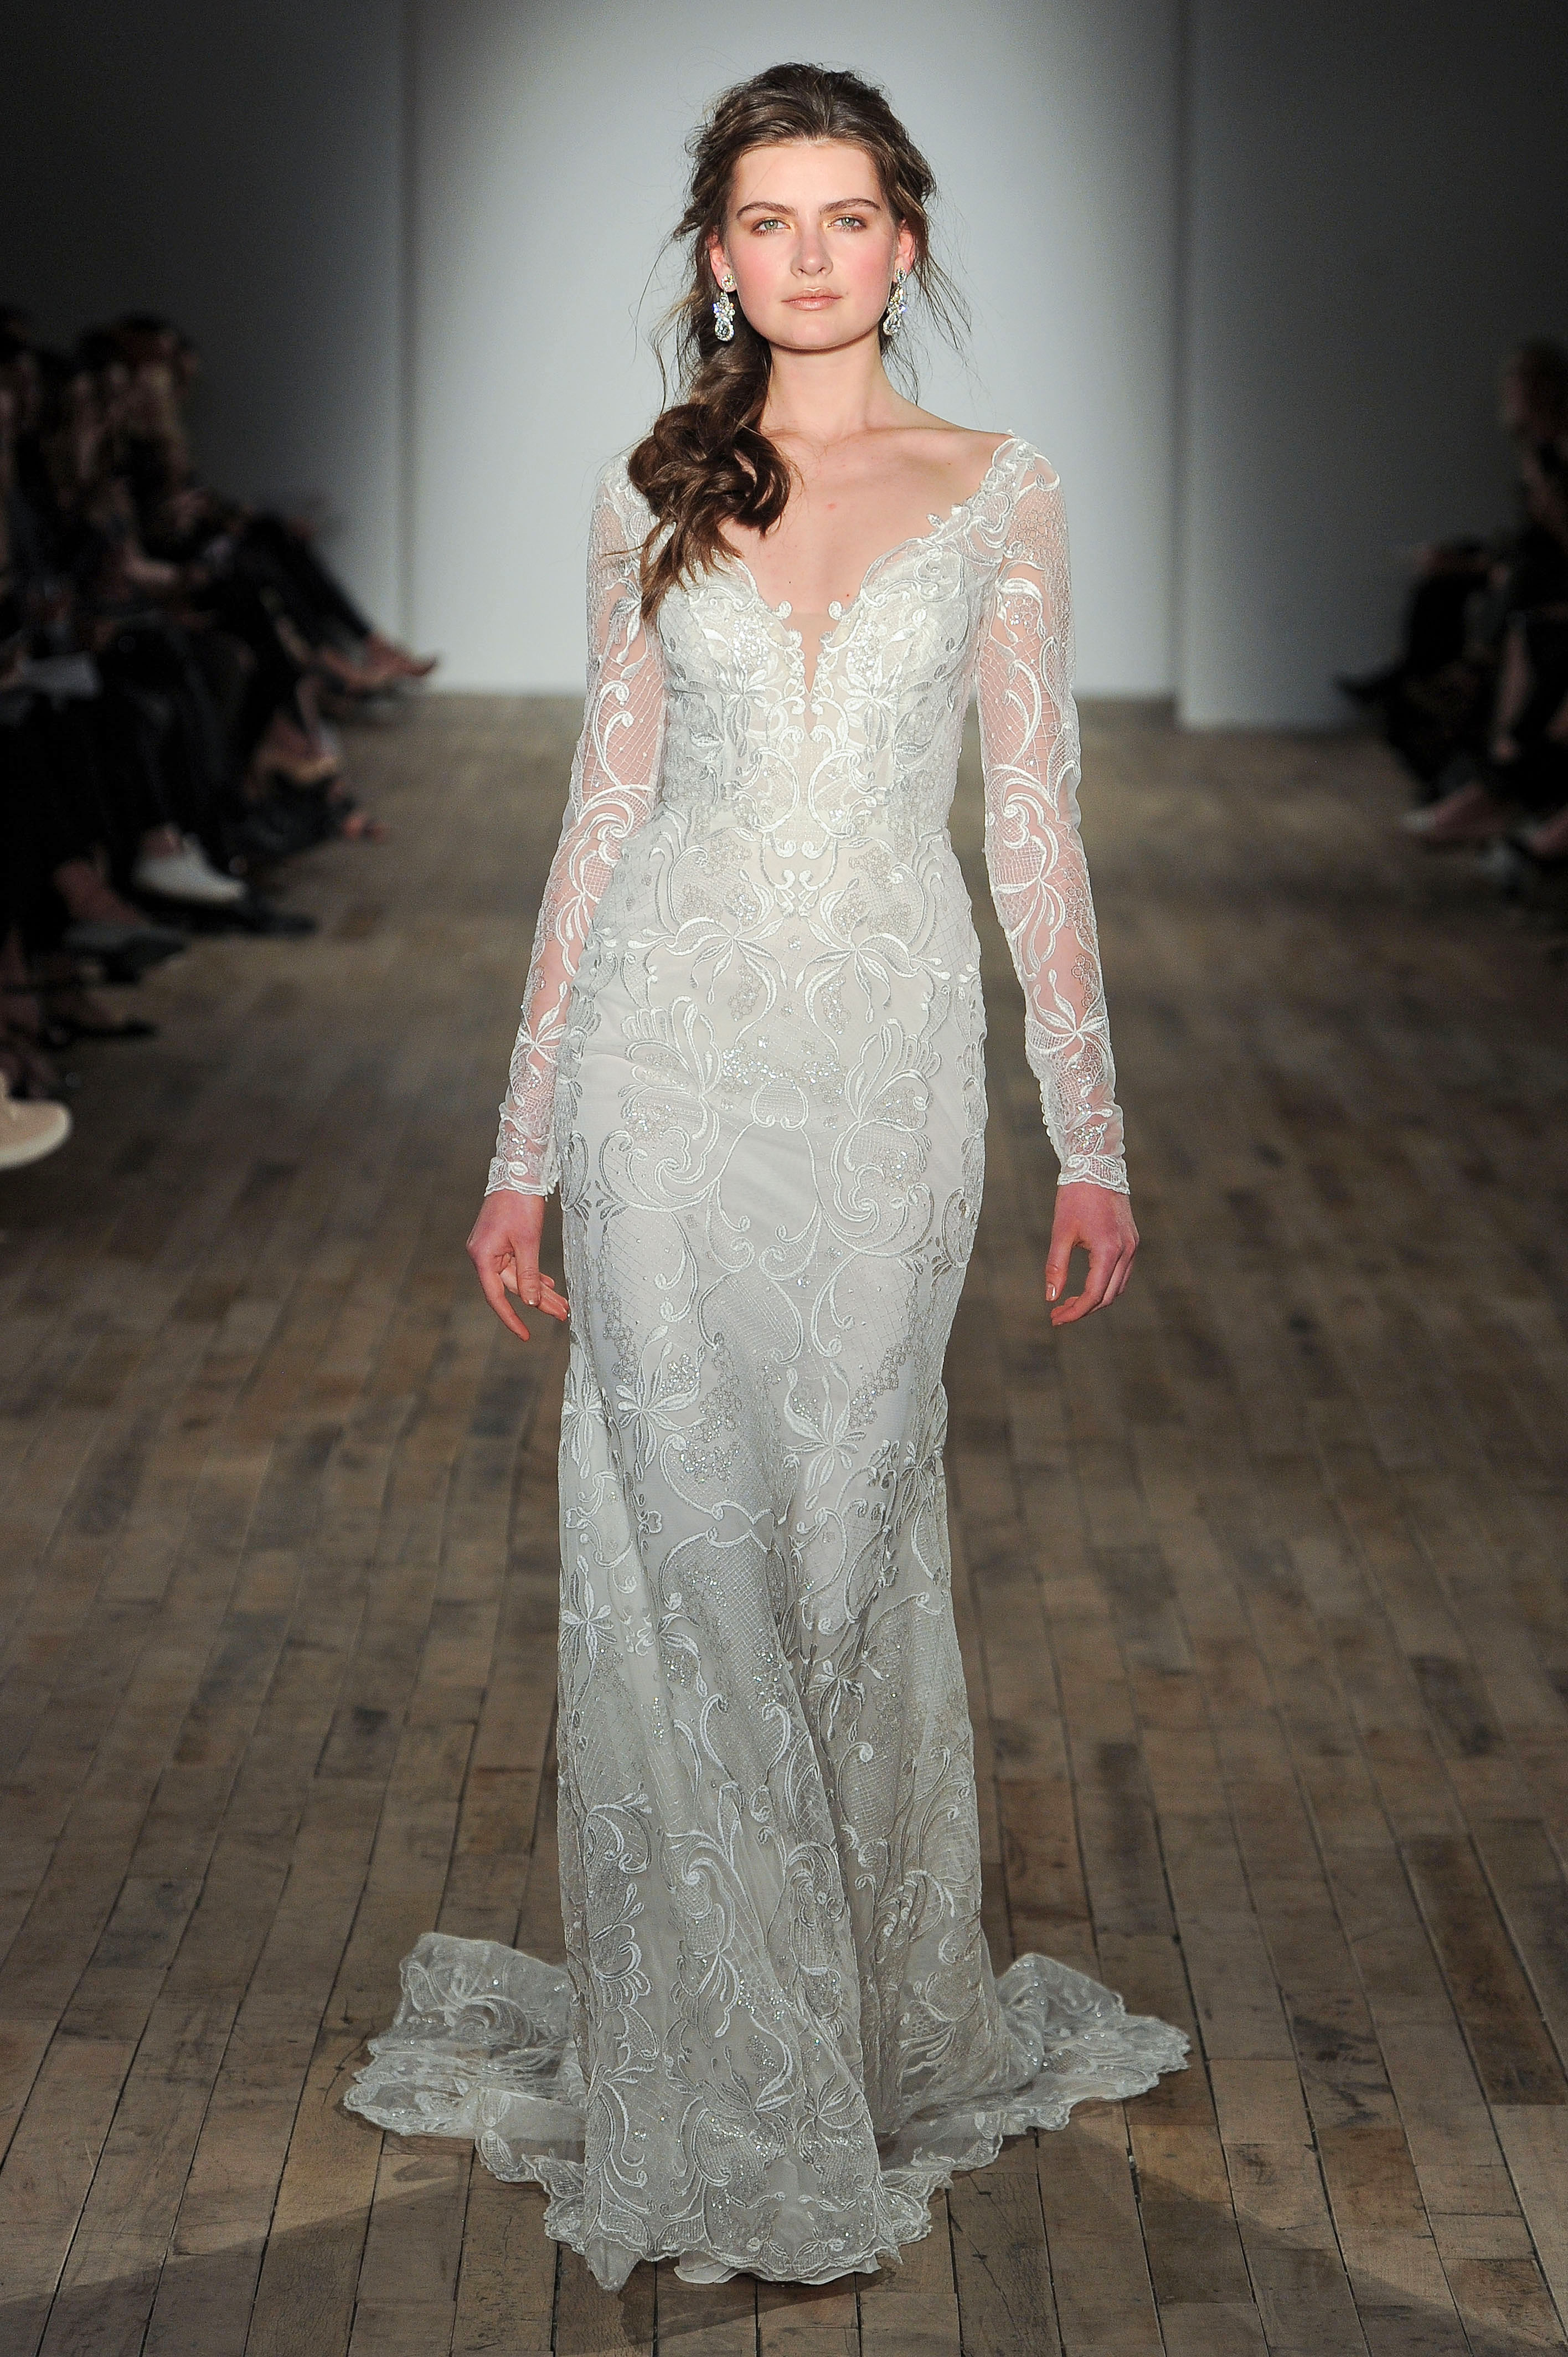 jlm tara keely long sleeves embellished wedding dress spring 2018